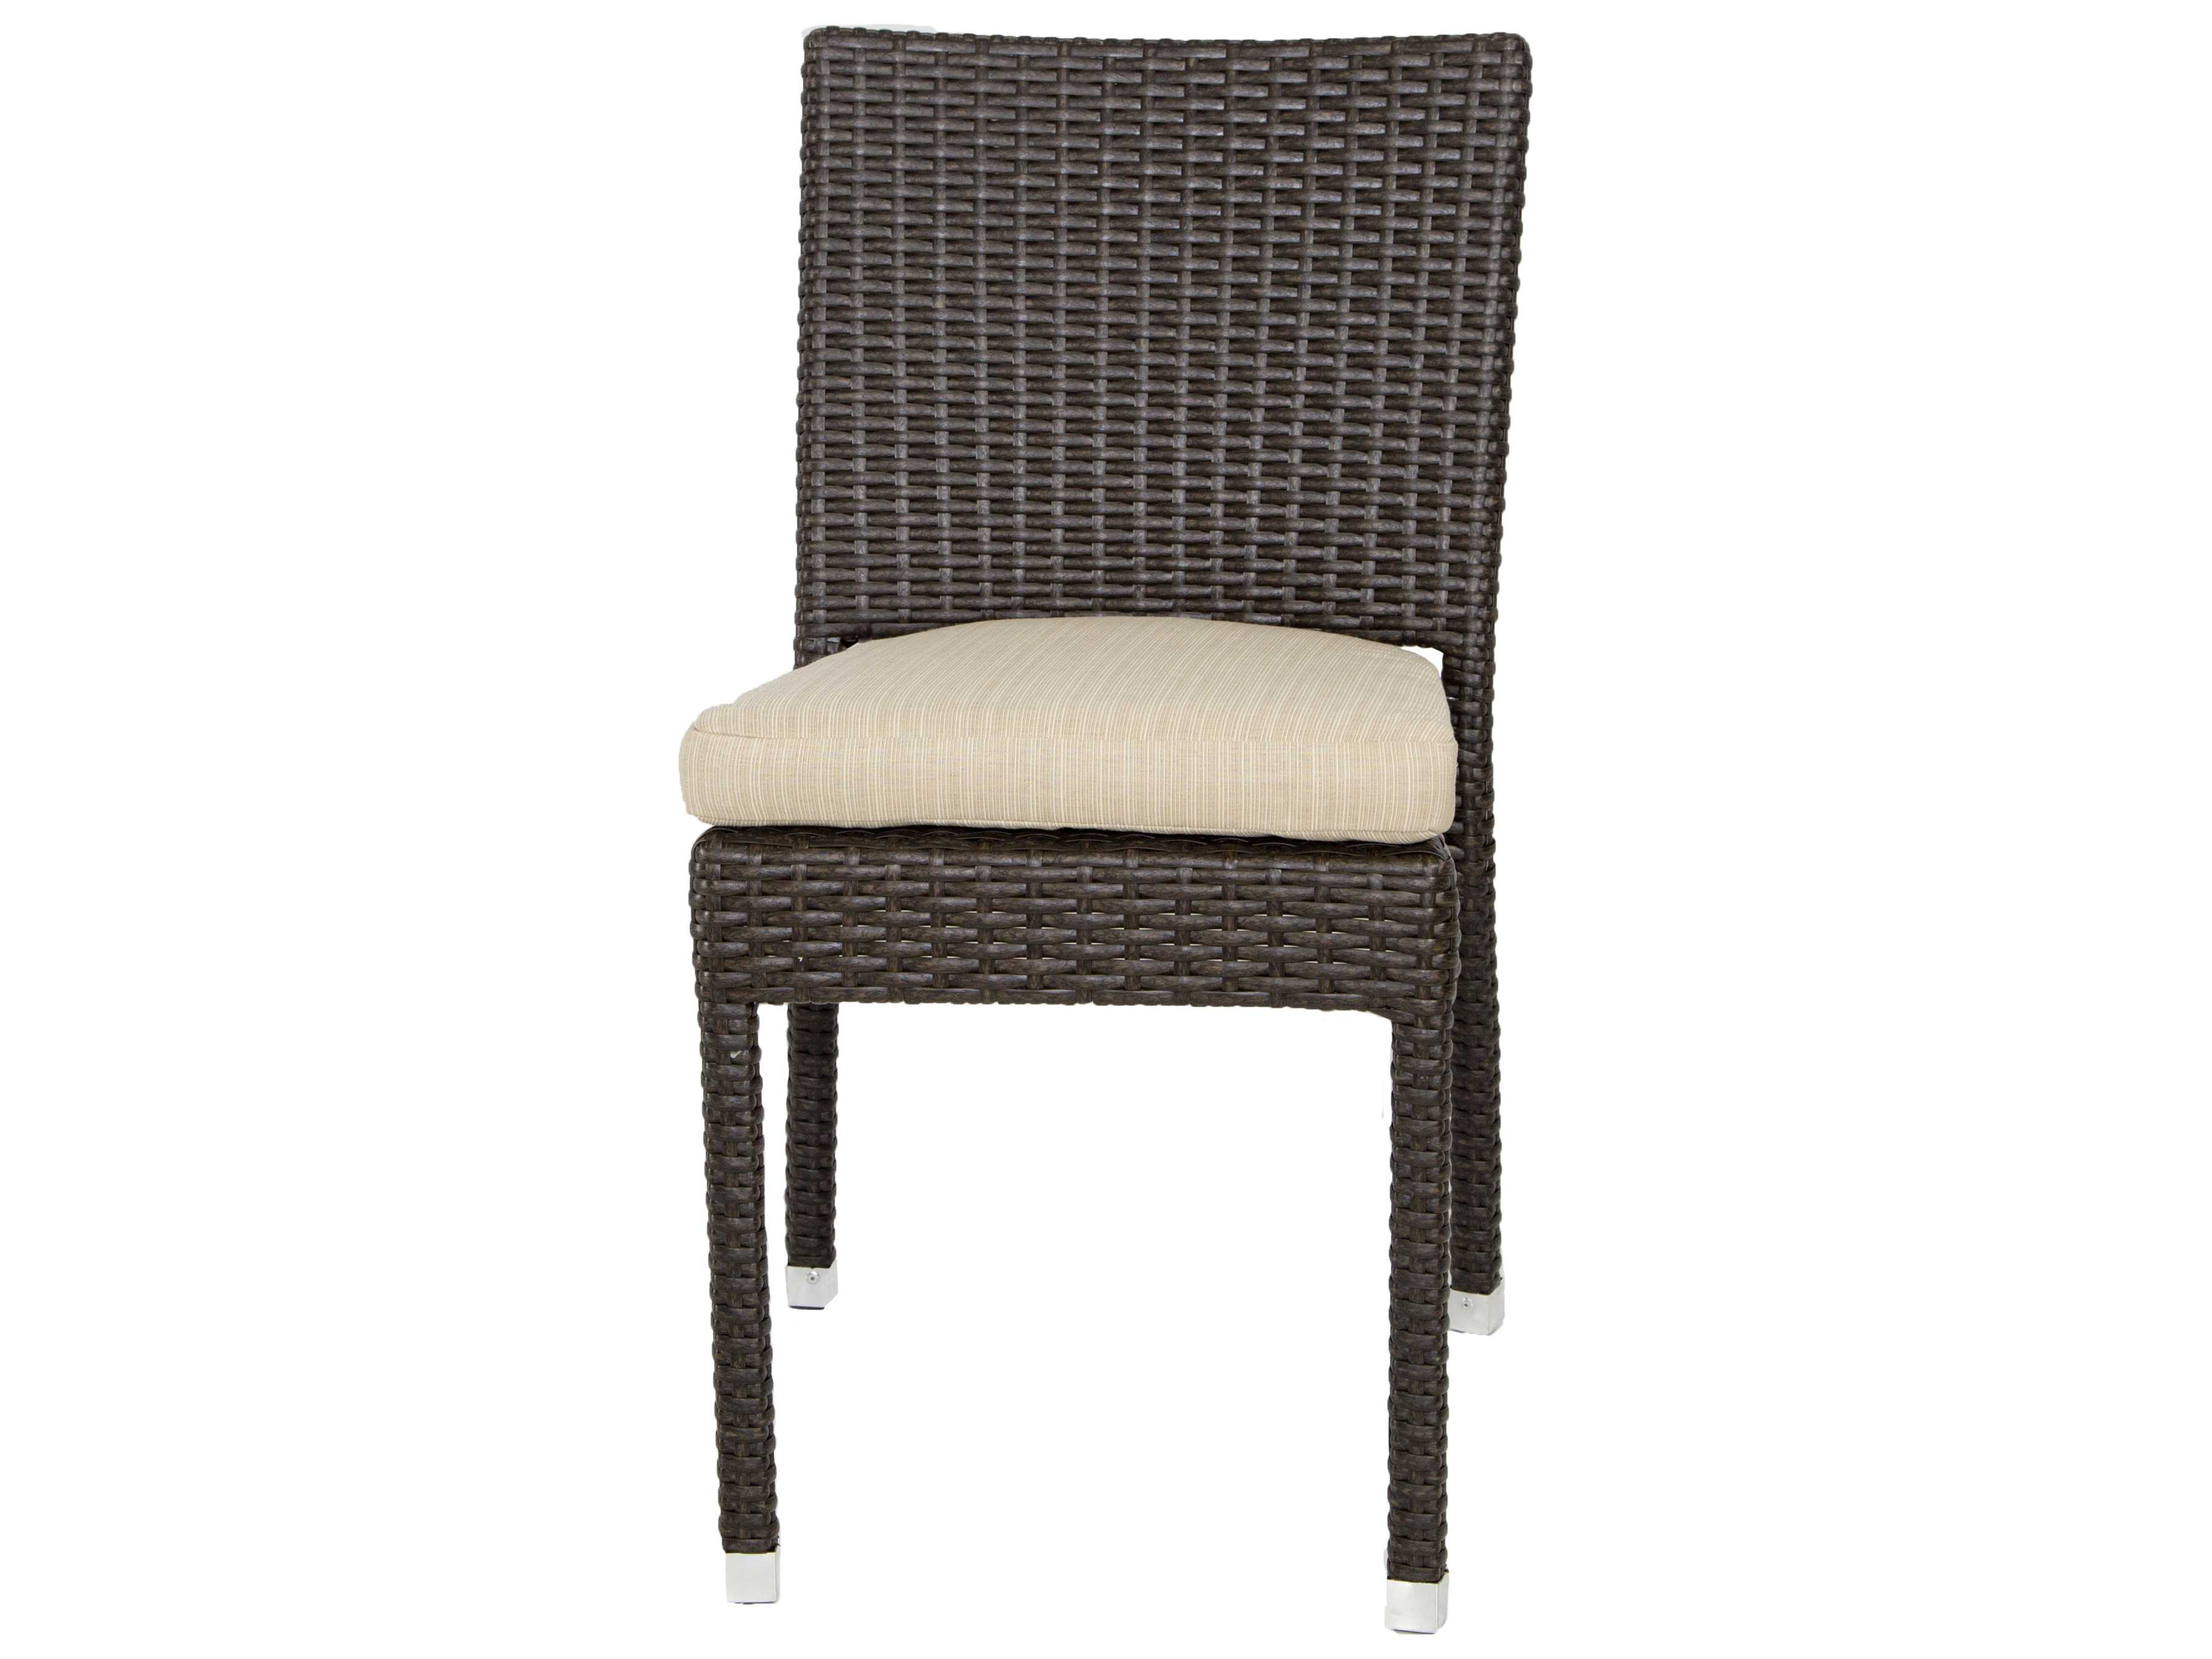 Wicker Side Chair Patio Heaven Zuma Wicker Side Chair Ph Zsc